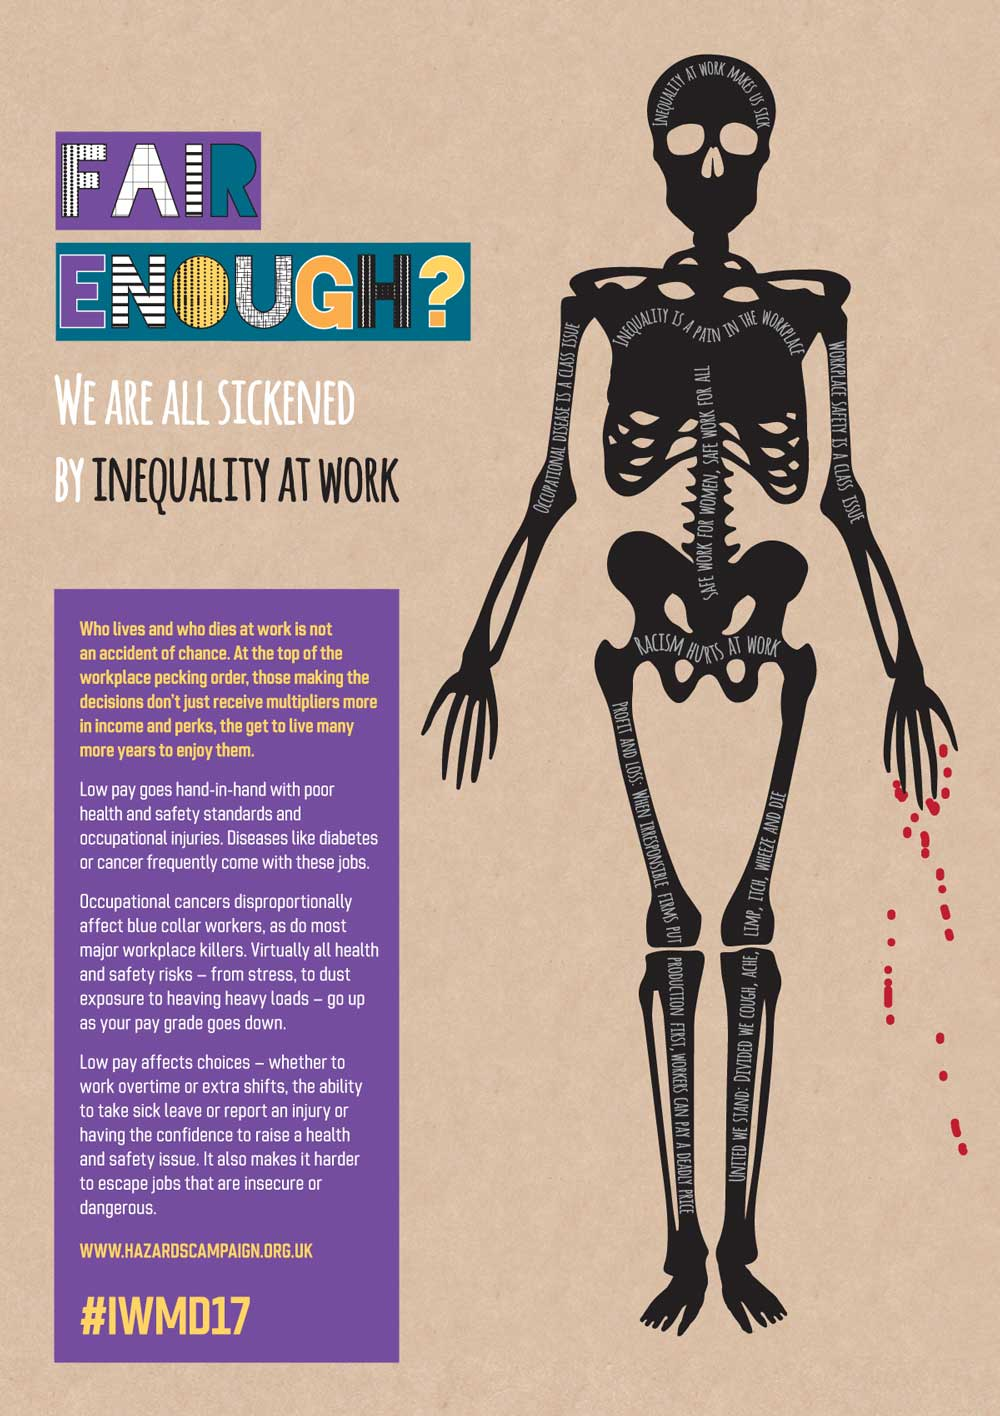 new graphic resources from the hazards campaign we are all sickened by inequality at work banner 2 working women at risk banner 3 racism hurts at work banner 4 the gig economy